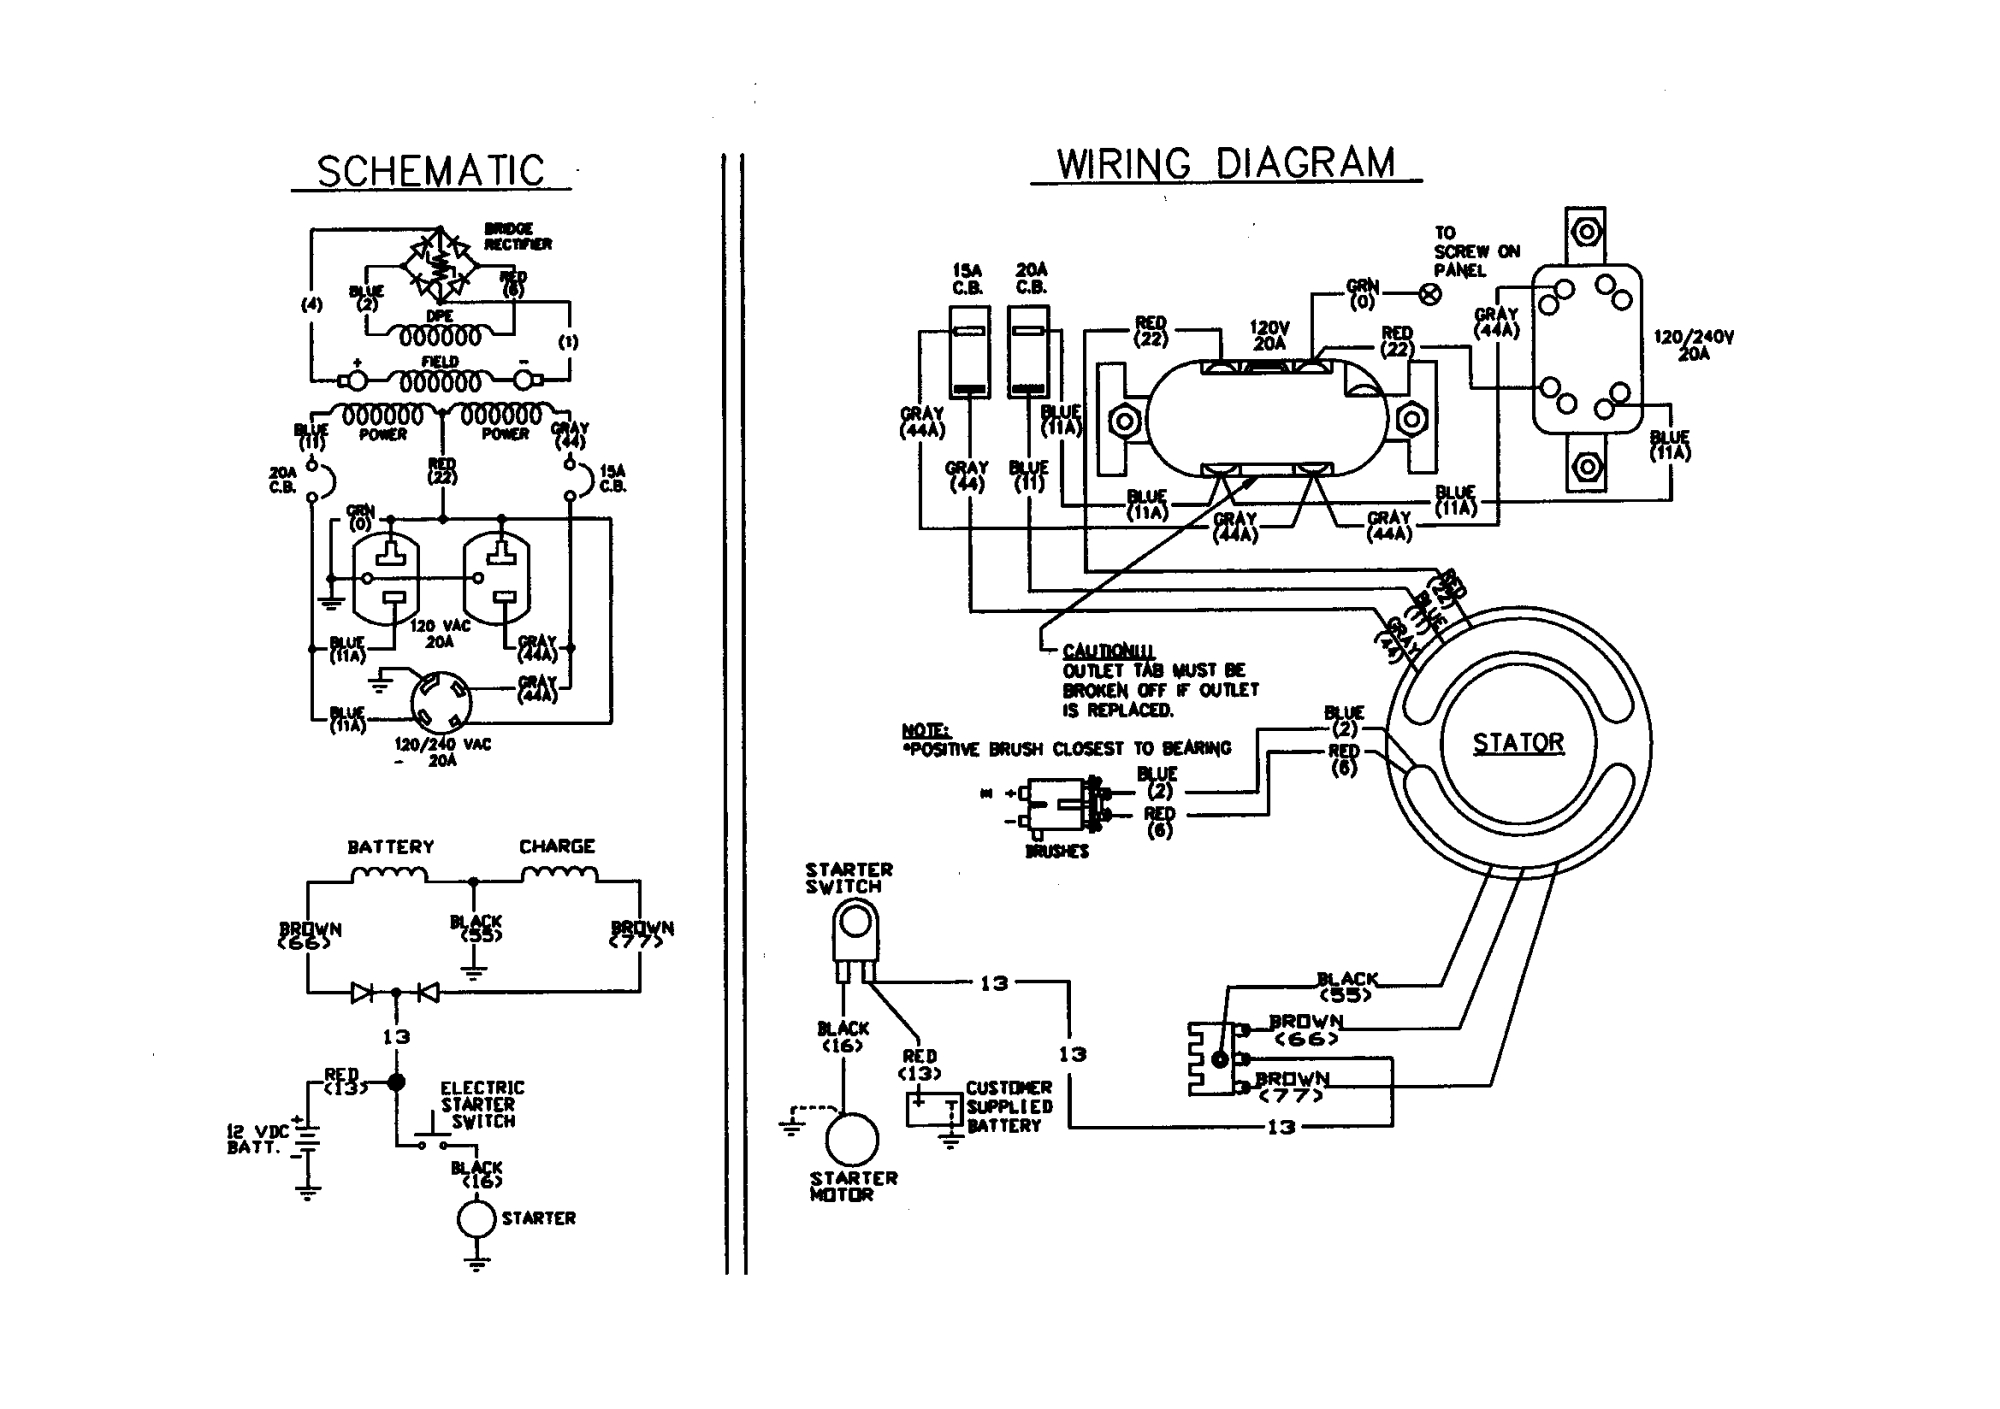 hight resolution of generator wire diagram wiring diagram inside home generator wiring schematic generator electrical diagram wiring diagram compilation